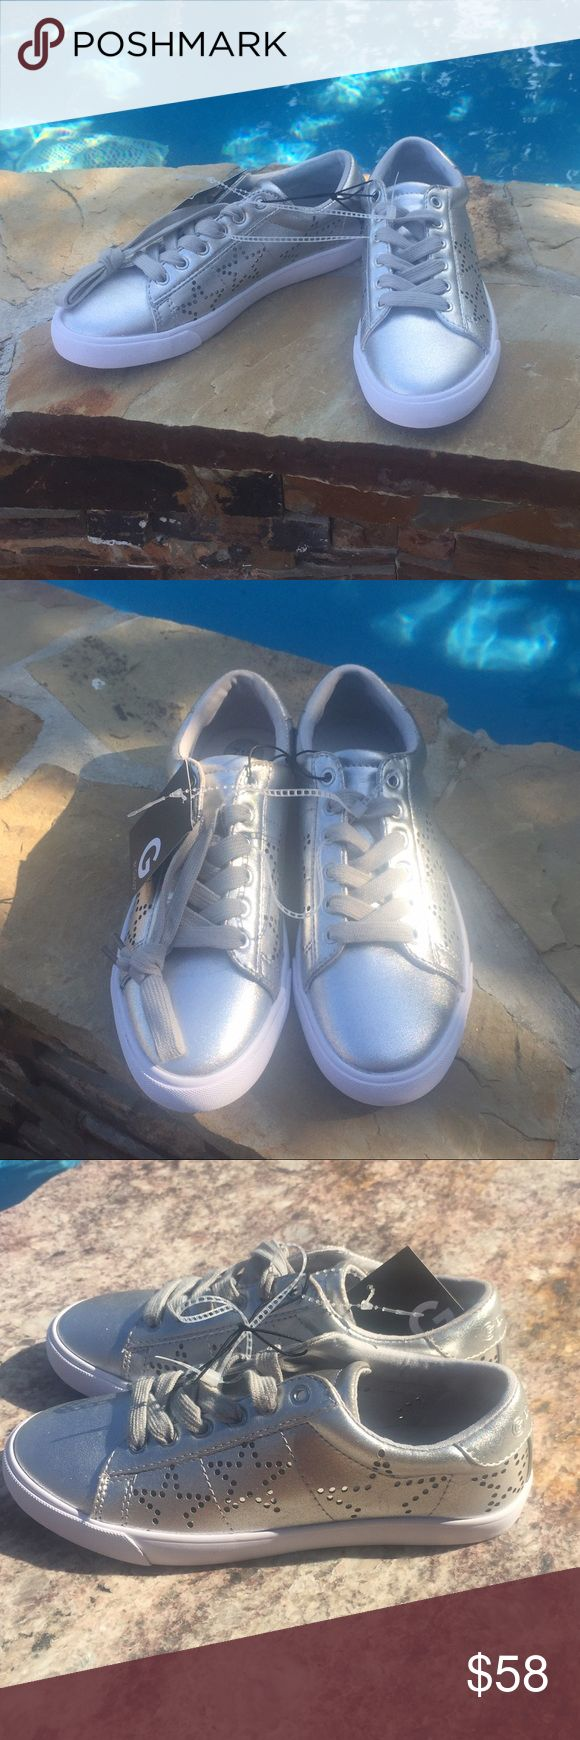 NWT Guess Shoes Adorable casual new shoes! They have a class tennis shoe style with modern star cut out designs. Silver with white soles. Guess Shoes Sneakers